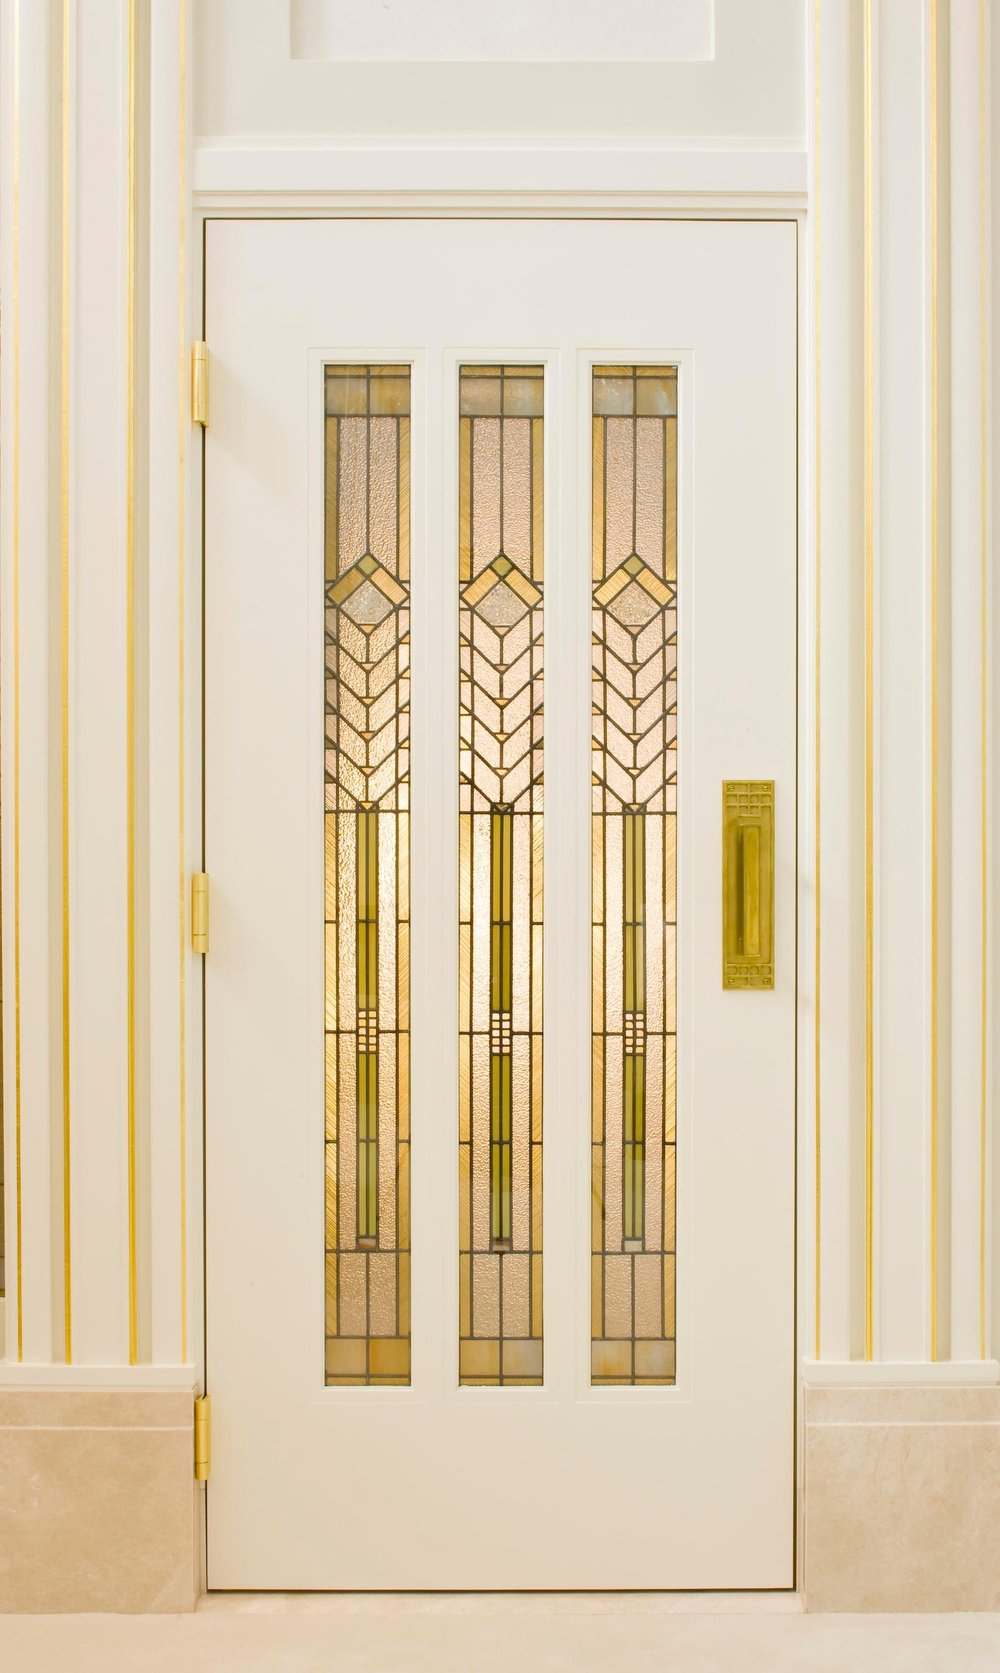 Holdman_Studios_Stained_Art_Glass_LDS_Mormon_Temple_Laie_Hawaii_Door.jpg